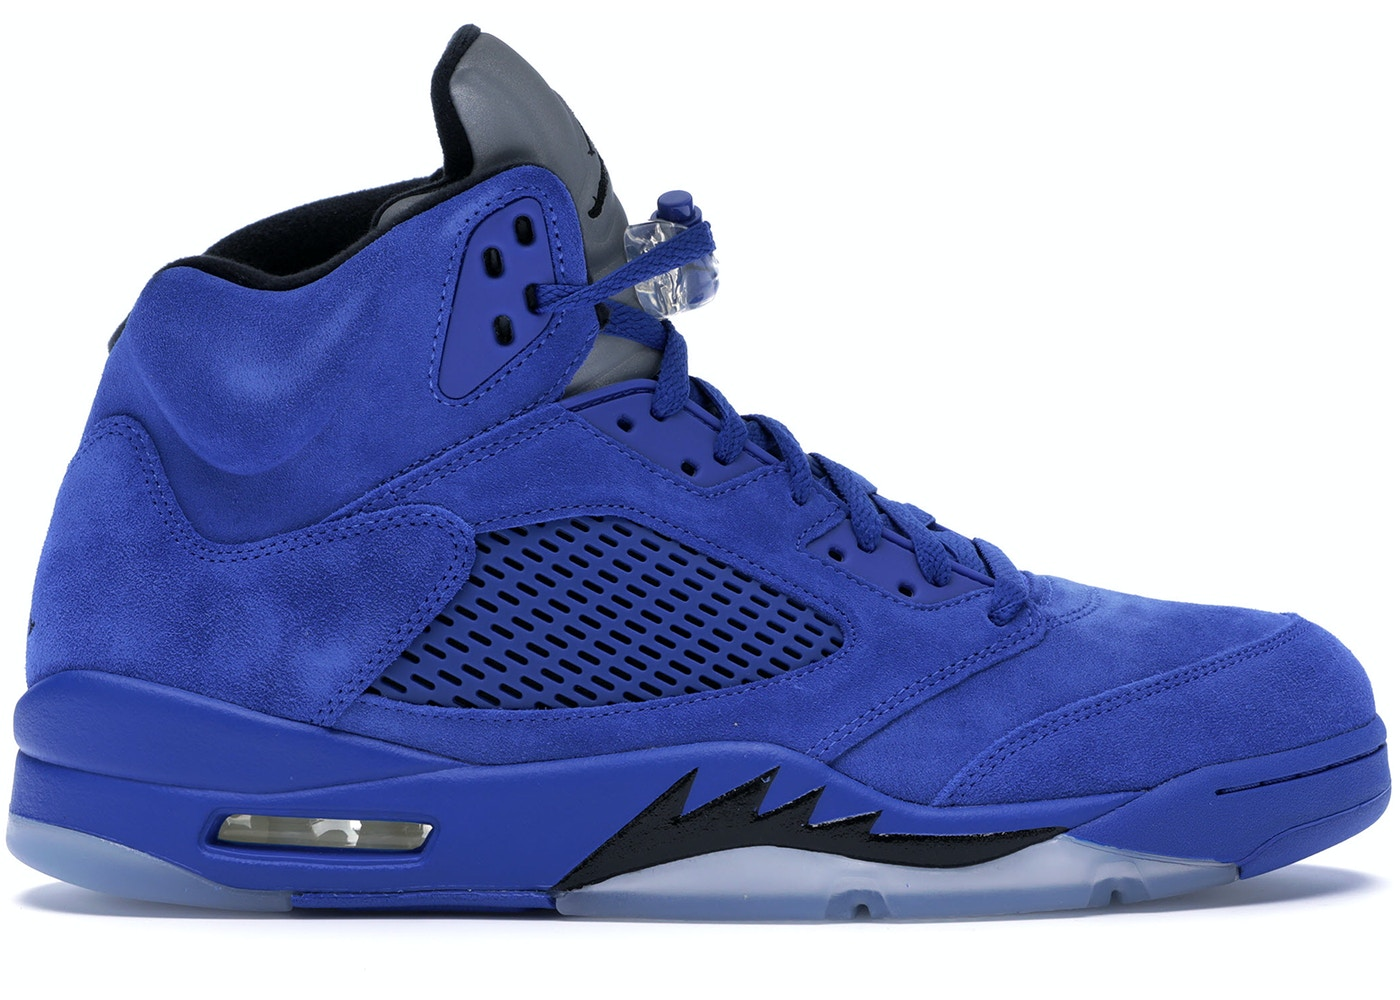 finest selection 4d561 756b8 Buy Air Jordan 5 Shoes & Deadstock Sneakers